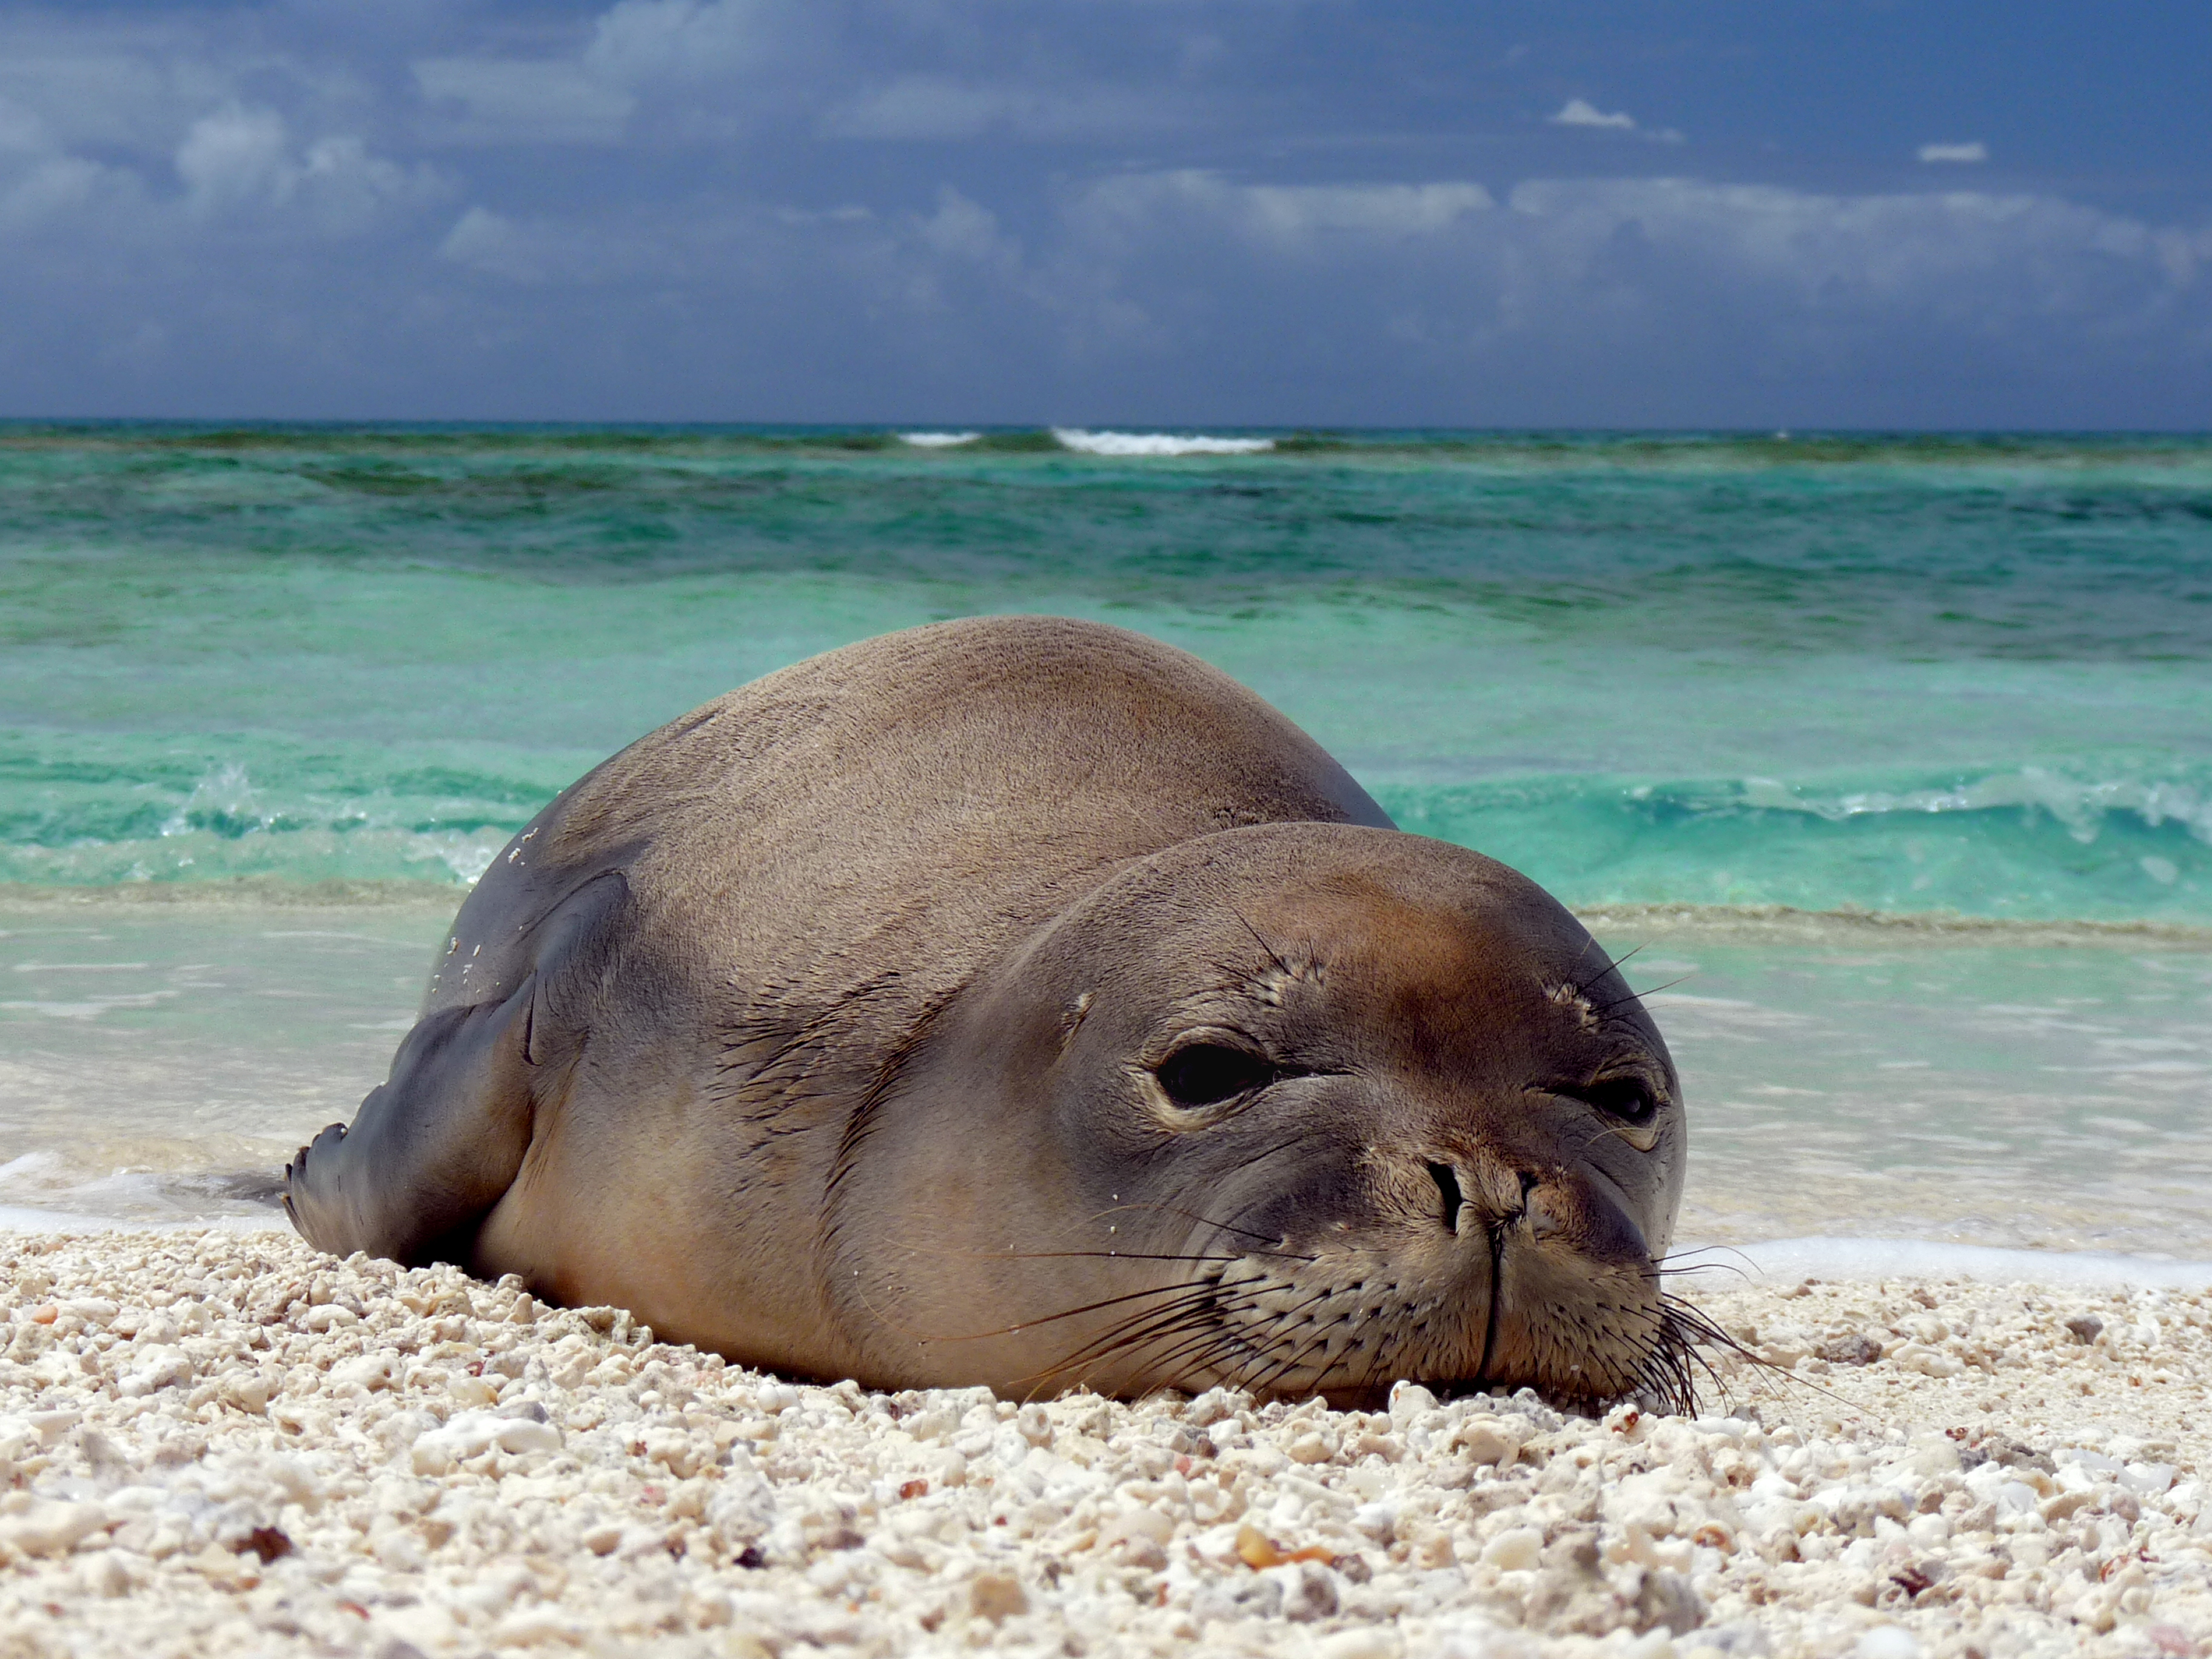 #Monkseals on Instagram can Teach Scientists about Human-Wildlife Interaction